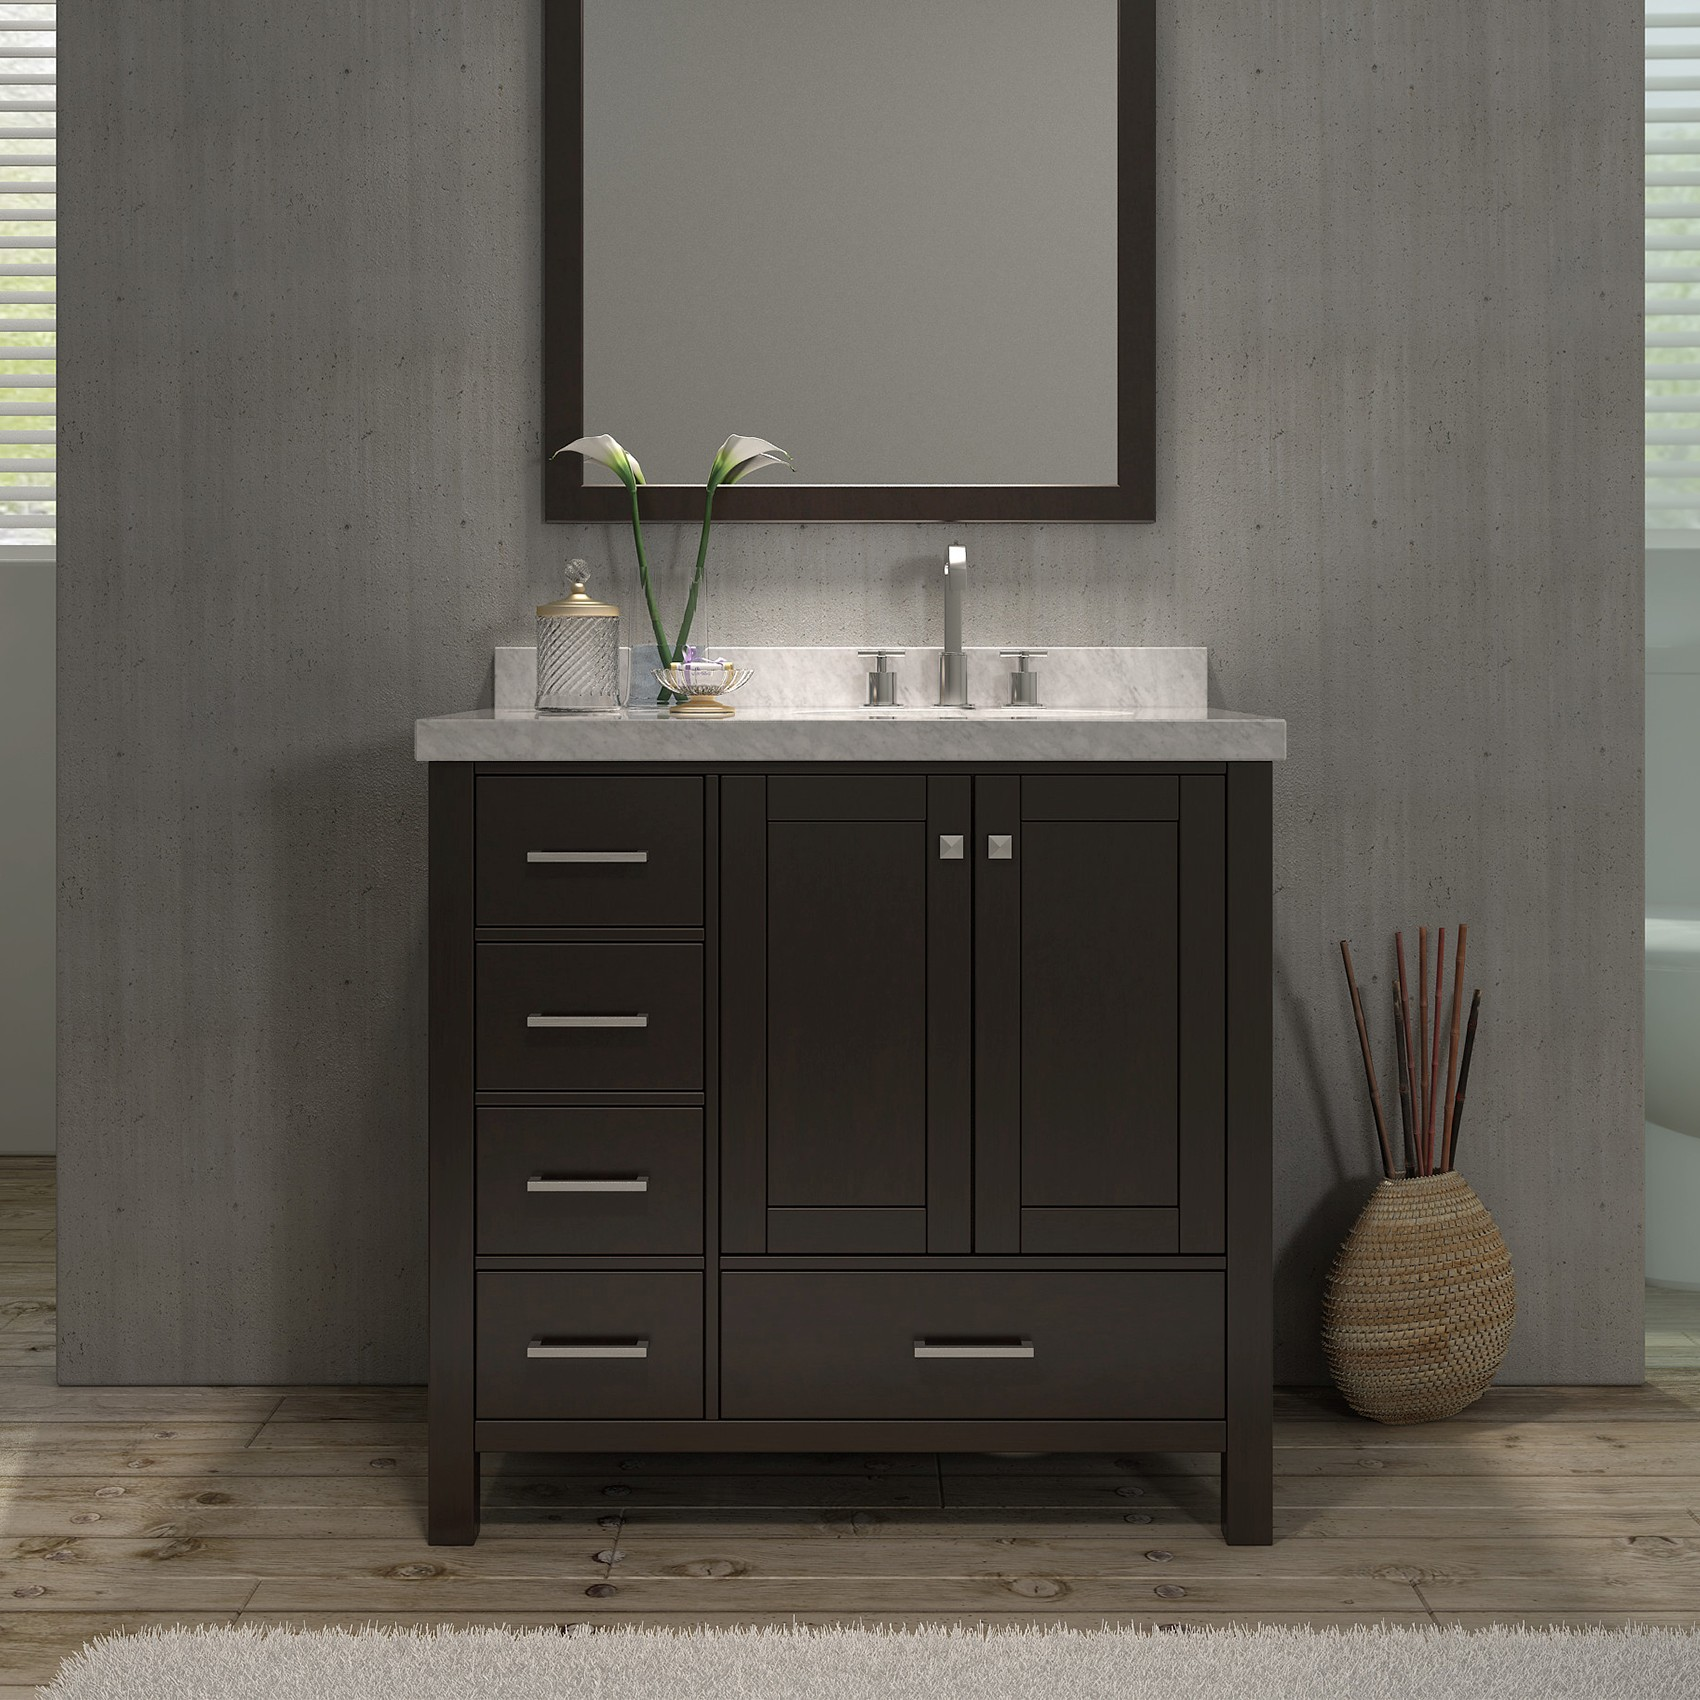 Affordable Bathroom Vanities Beautiful Fresh Affordable Bathroom Vanities S Design